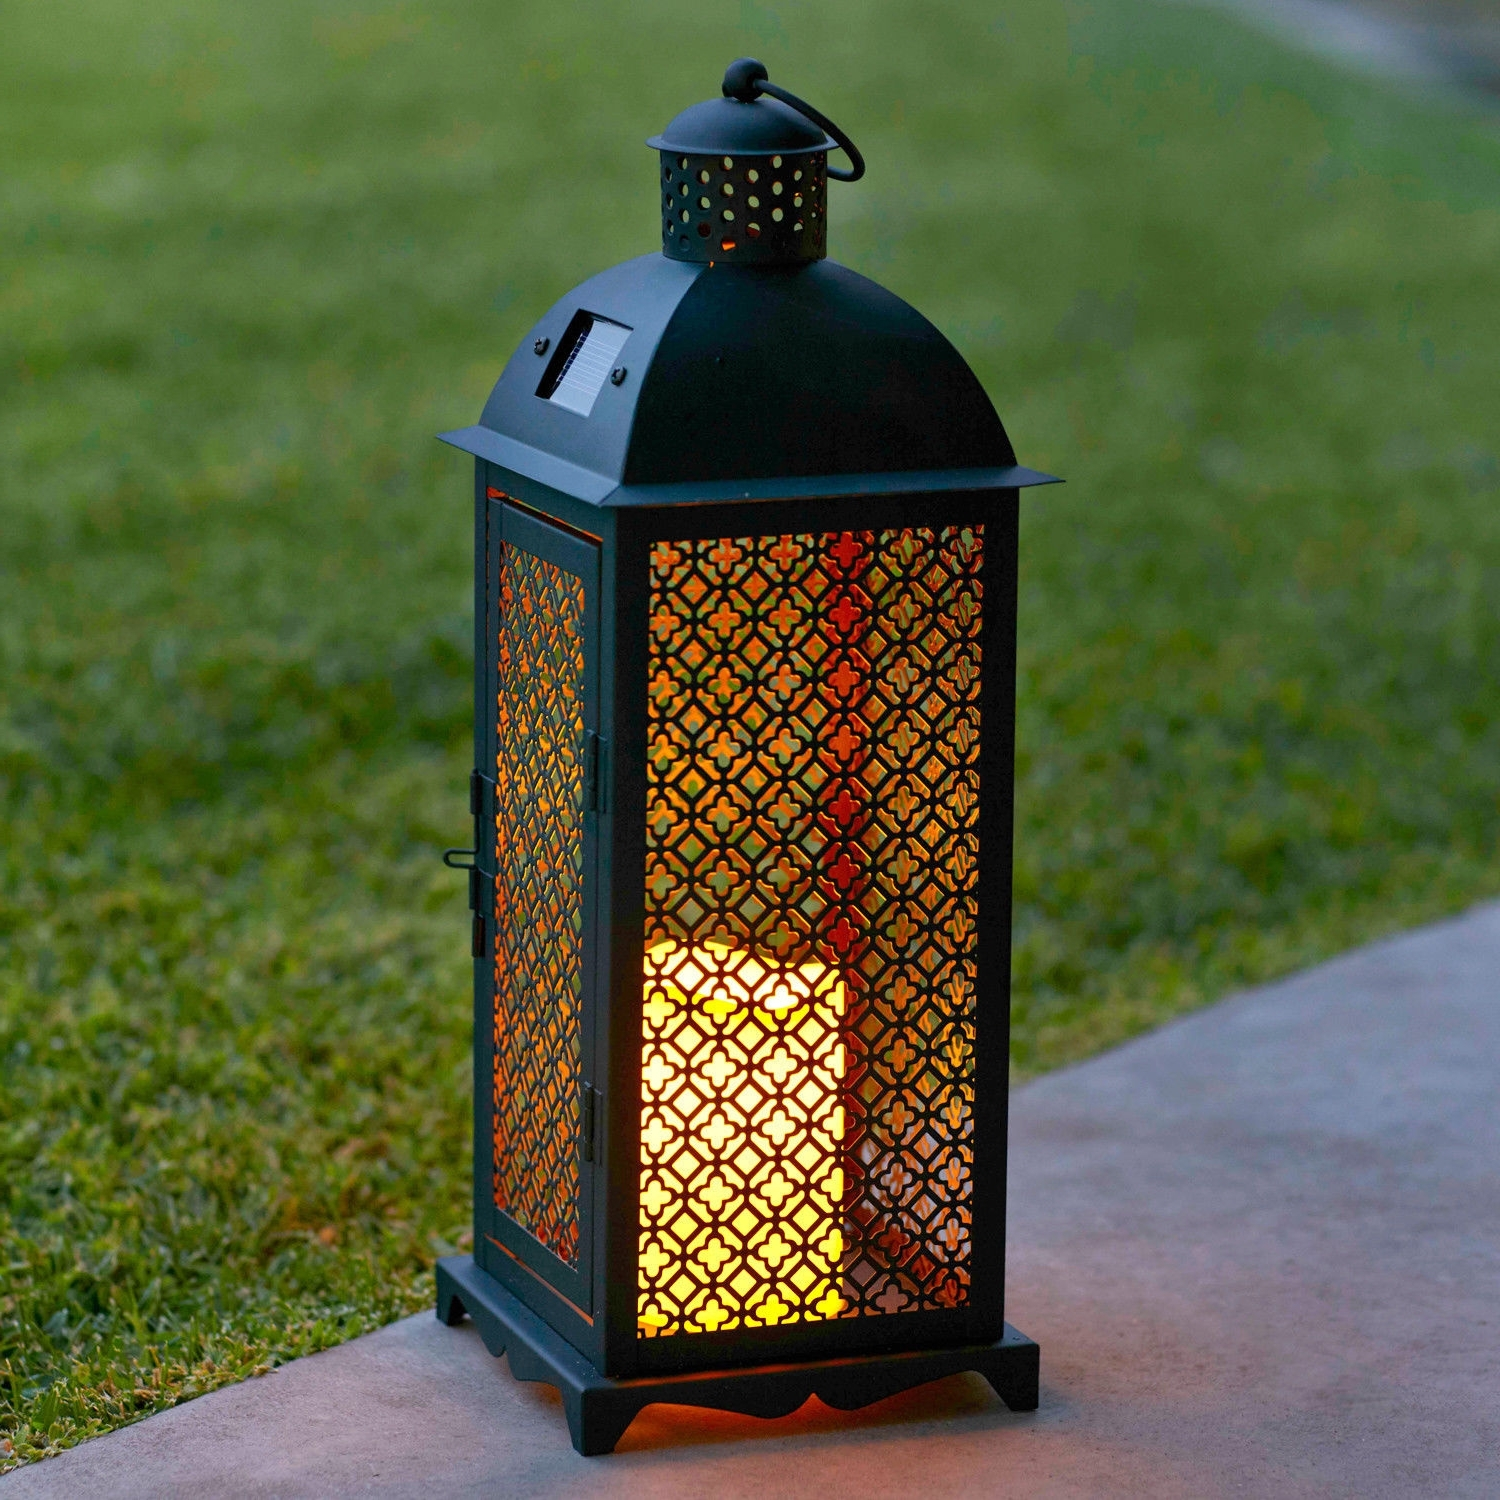 Outdoor Lanterns With Flameless Candles Regarding Well Known Moroccan Solar Powered Led Garden Outdoor Flameless Candle Lantern (View 9 of 20)